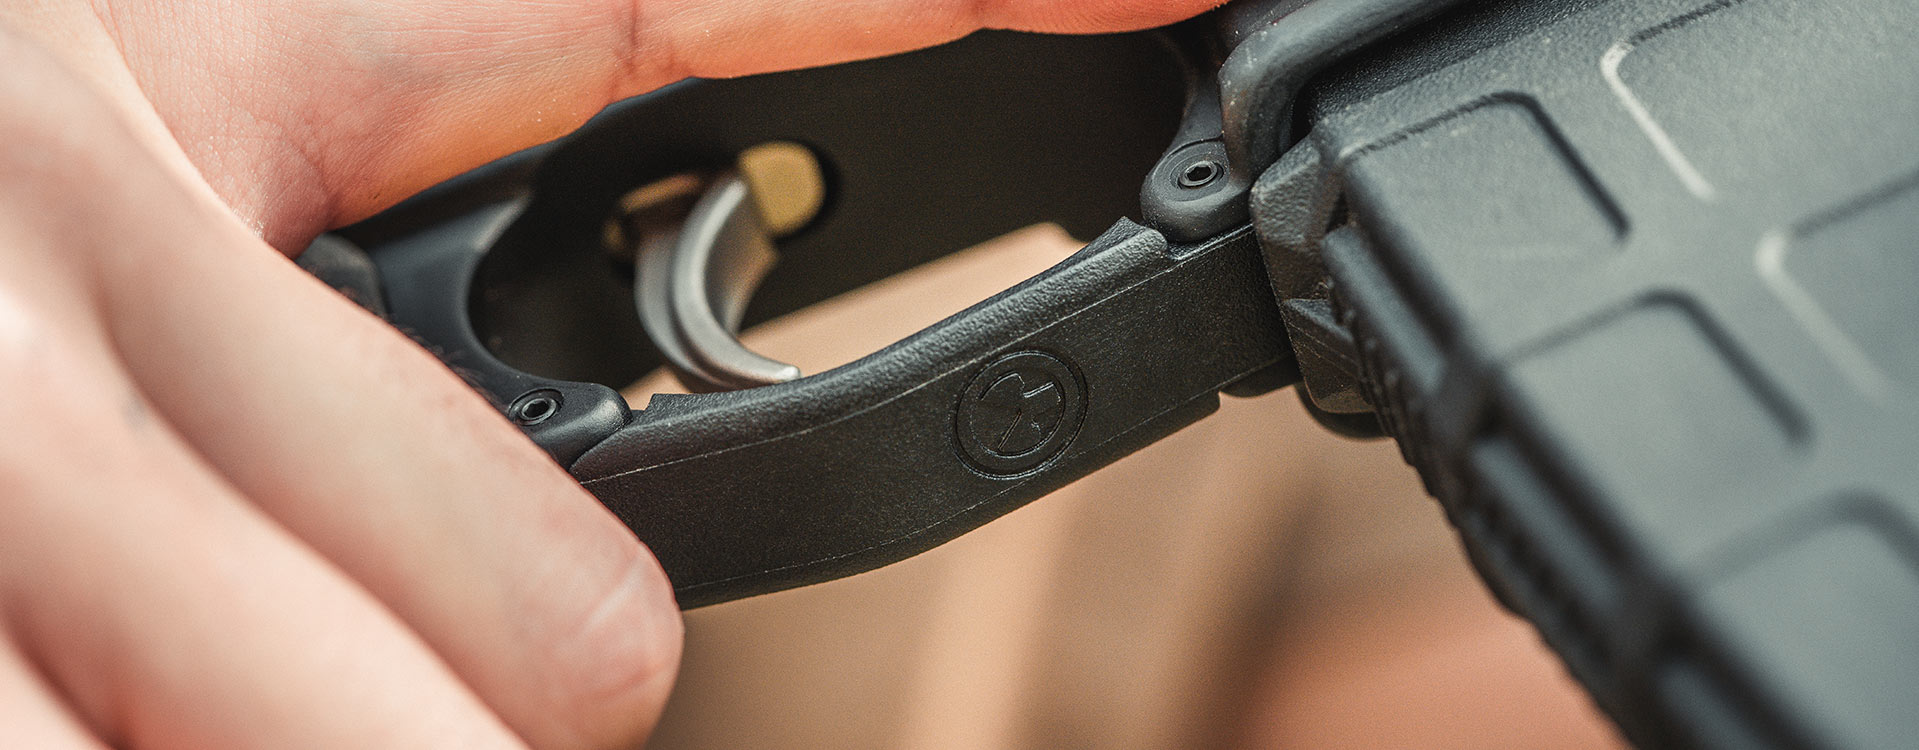 MOE Enhanced Trigger Guard, Polymer installed on an AR15 with Gen M3 PMAG and showing the set screws used for mounting